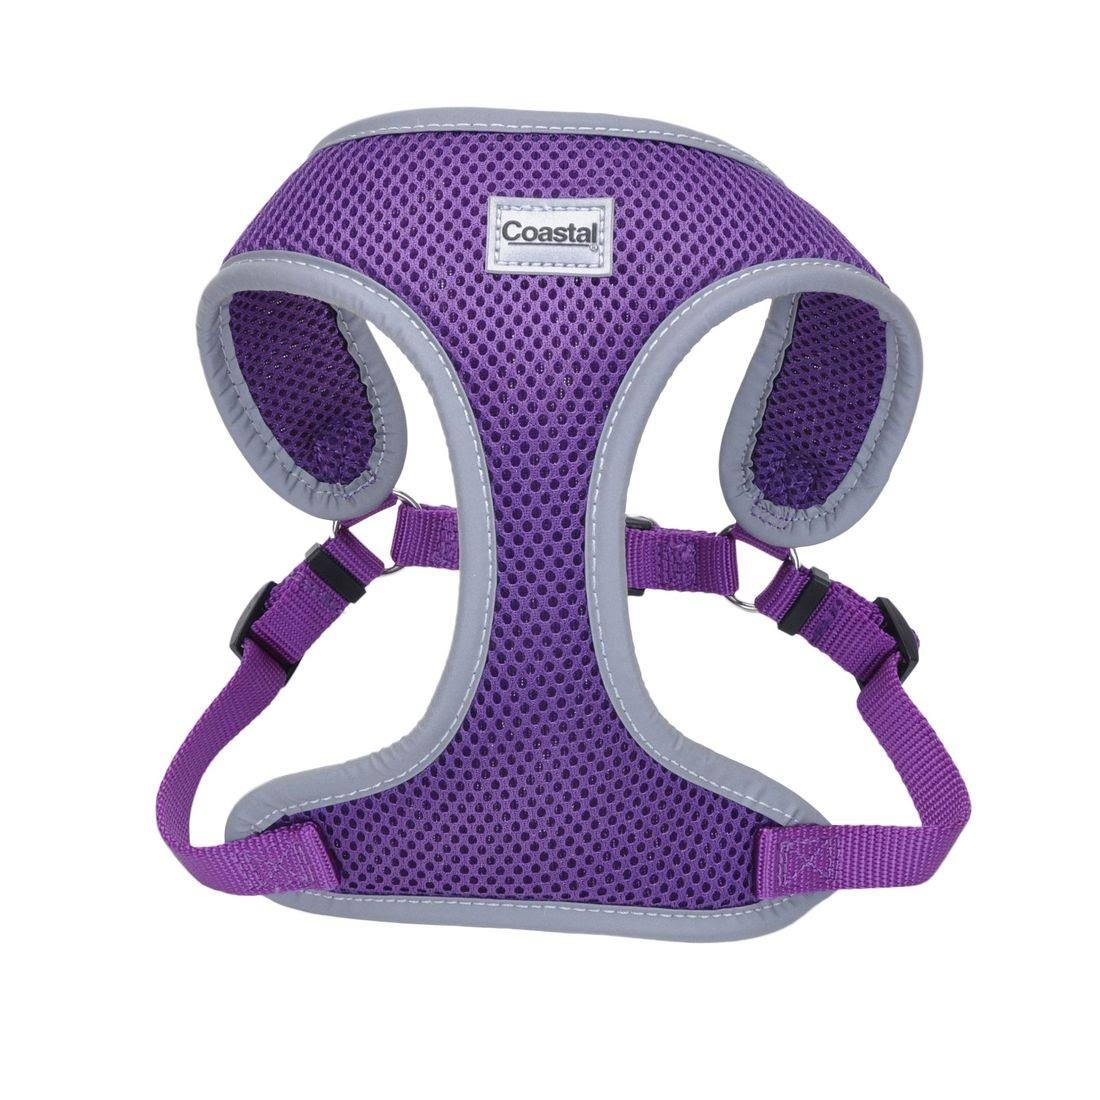 Coastal Pet Products Mesh Reflective Harness - Purple, Small